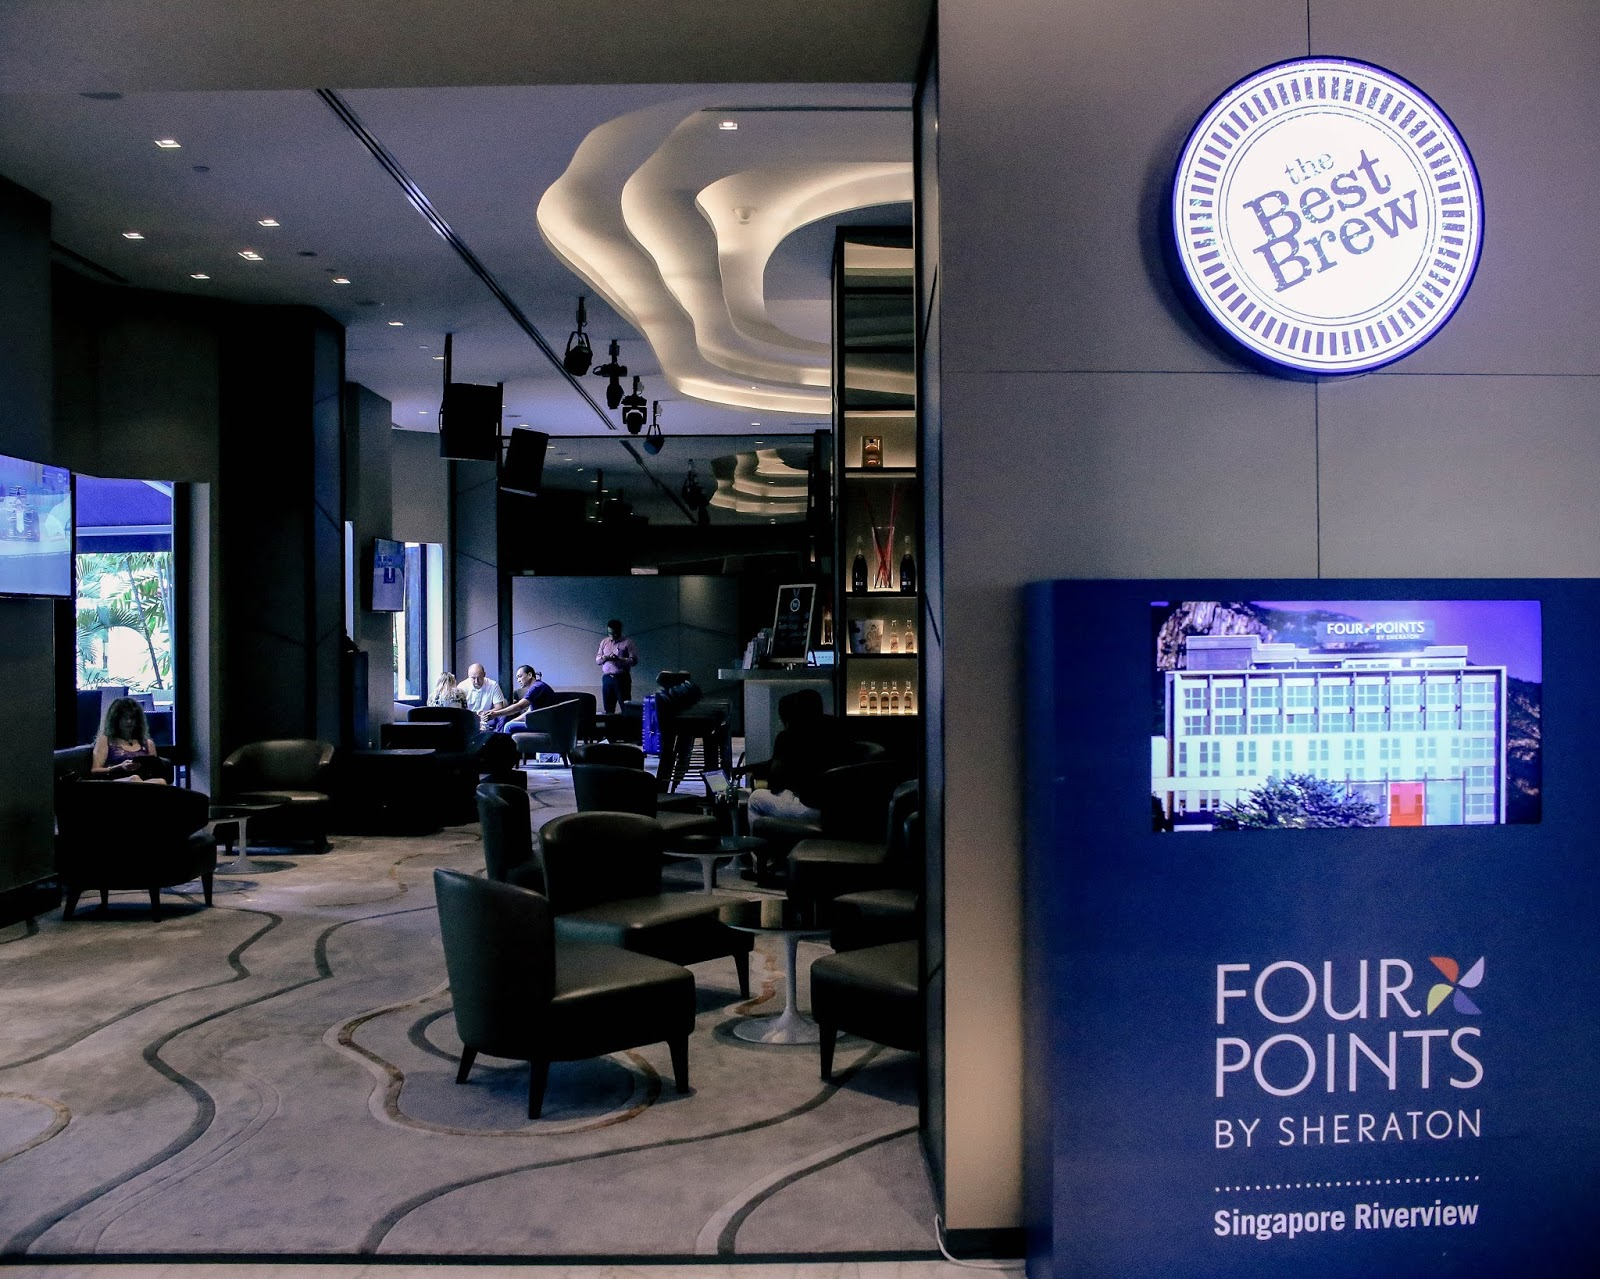 the best brew, fourpoints by sheraton, singapore